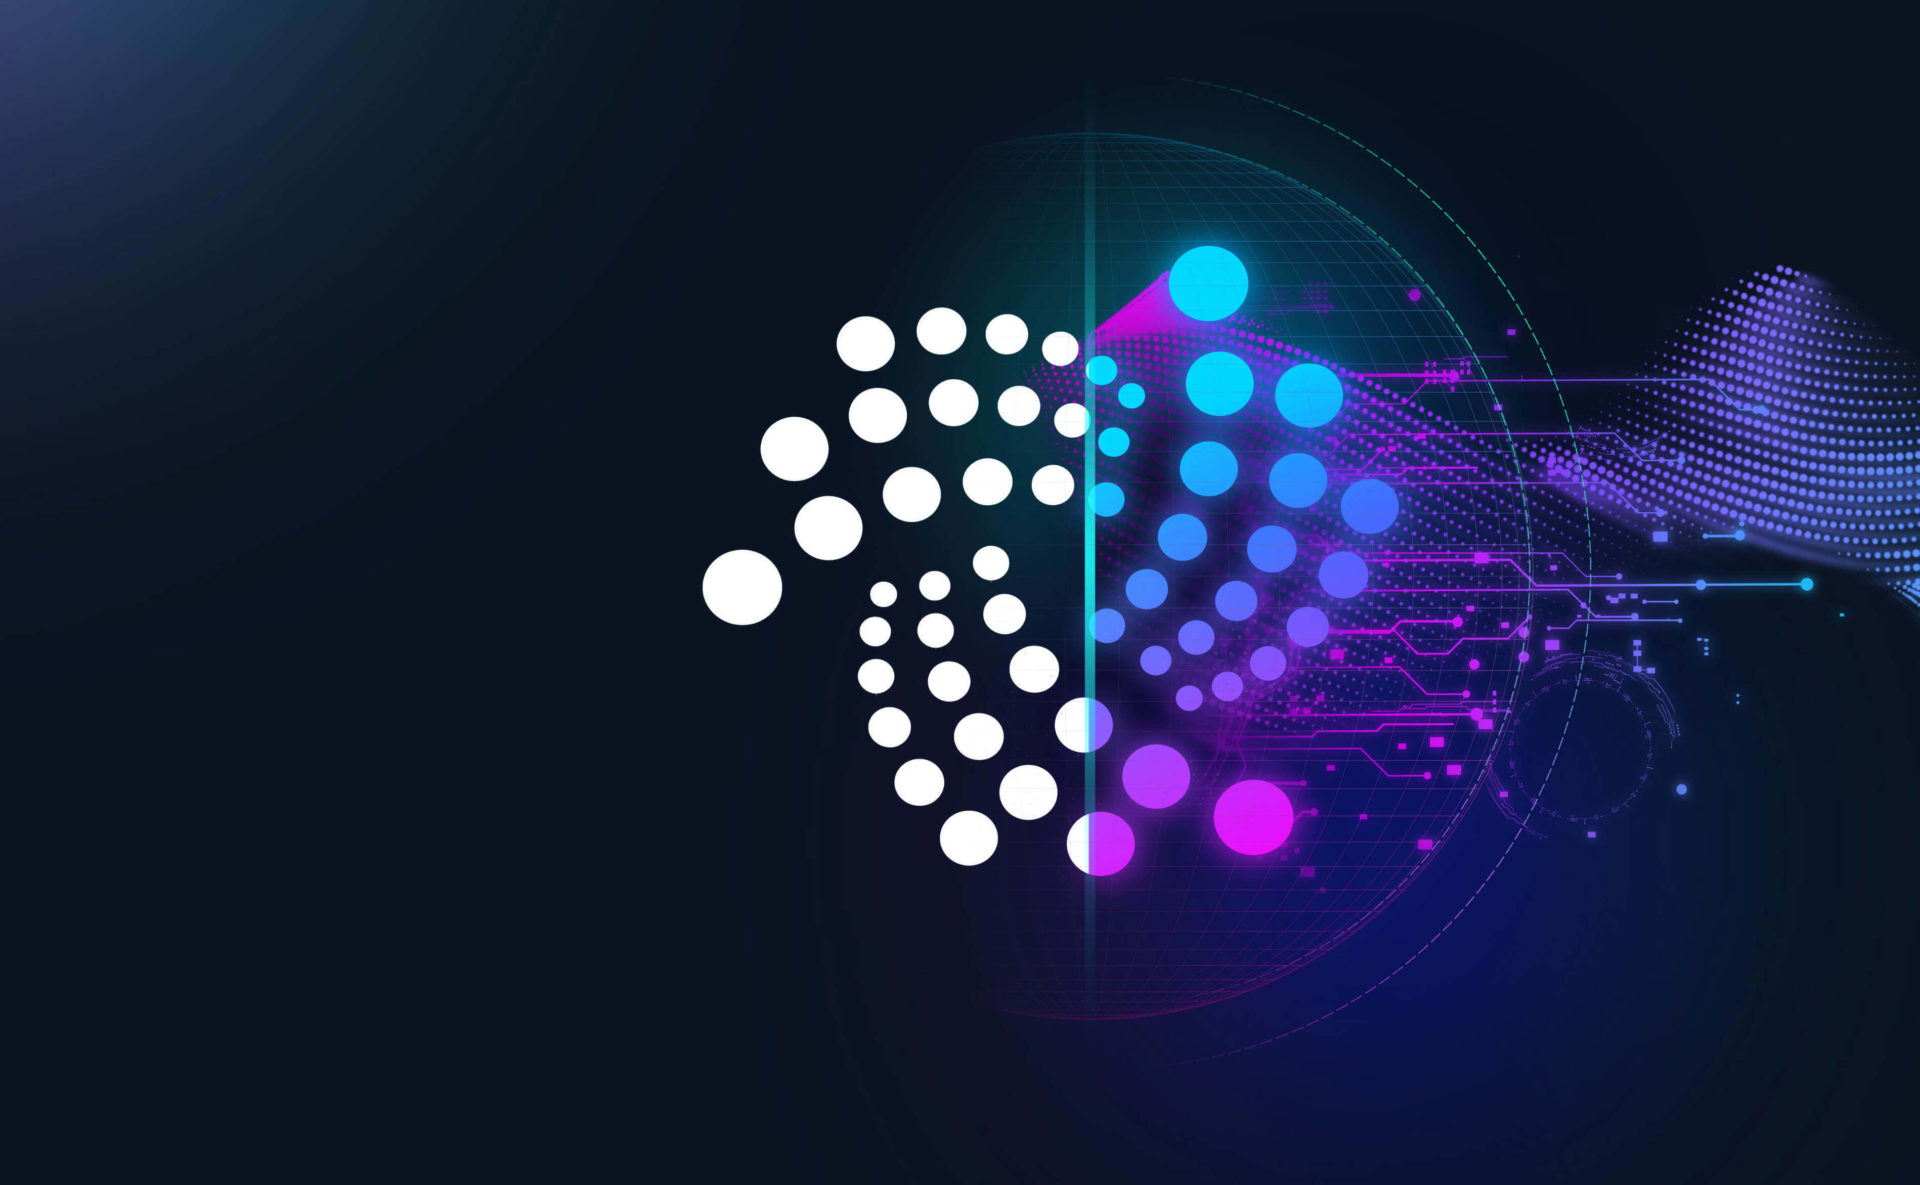 IOTA (MIOTA) Expands Industrial Partnerships with VW, Bosch and Fujistsu 13